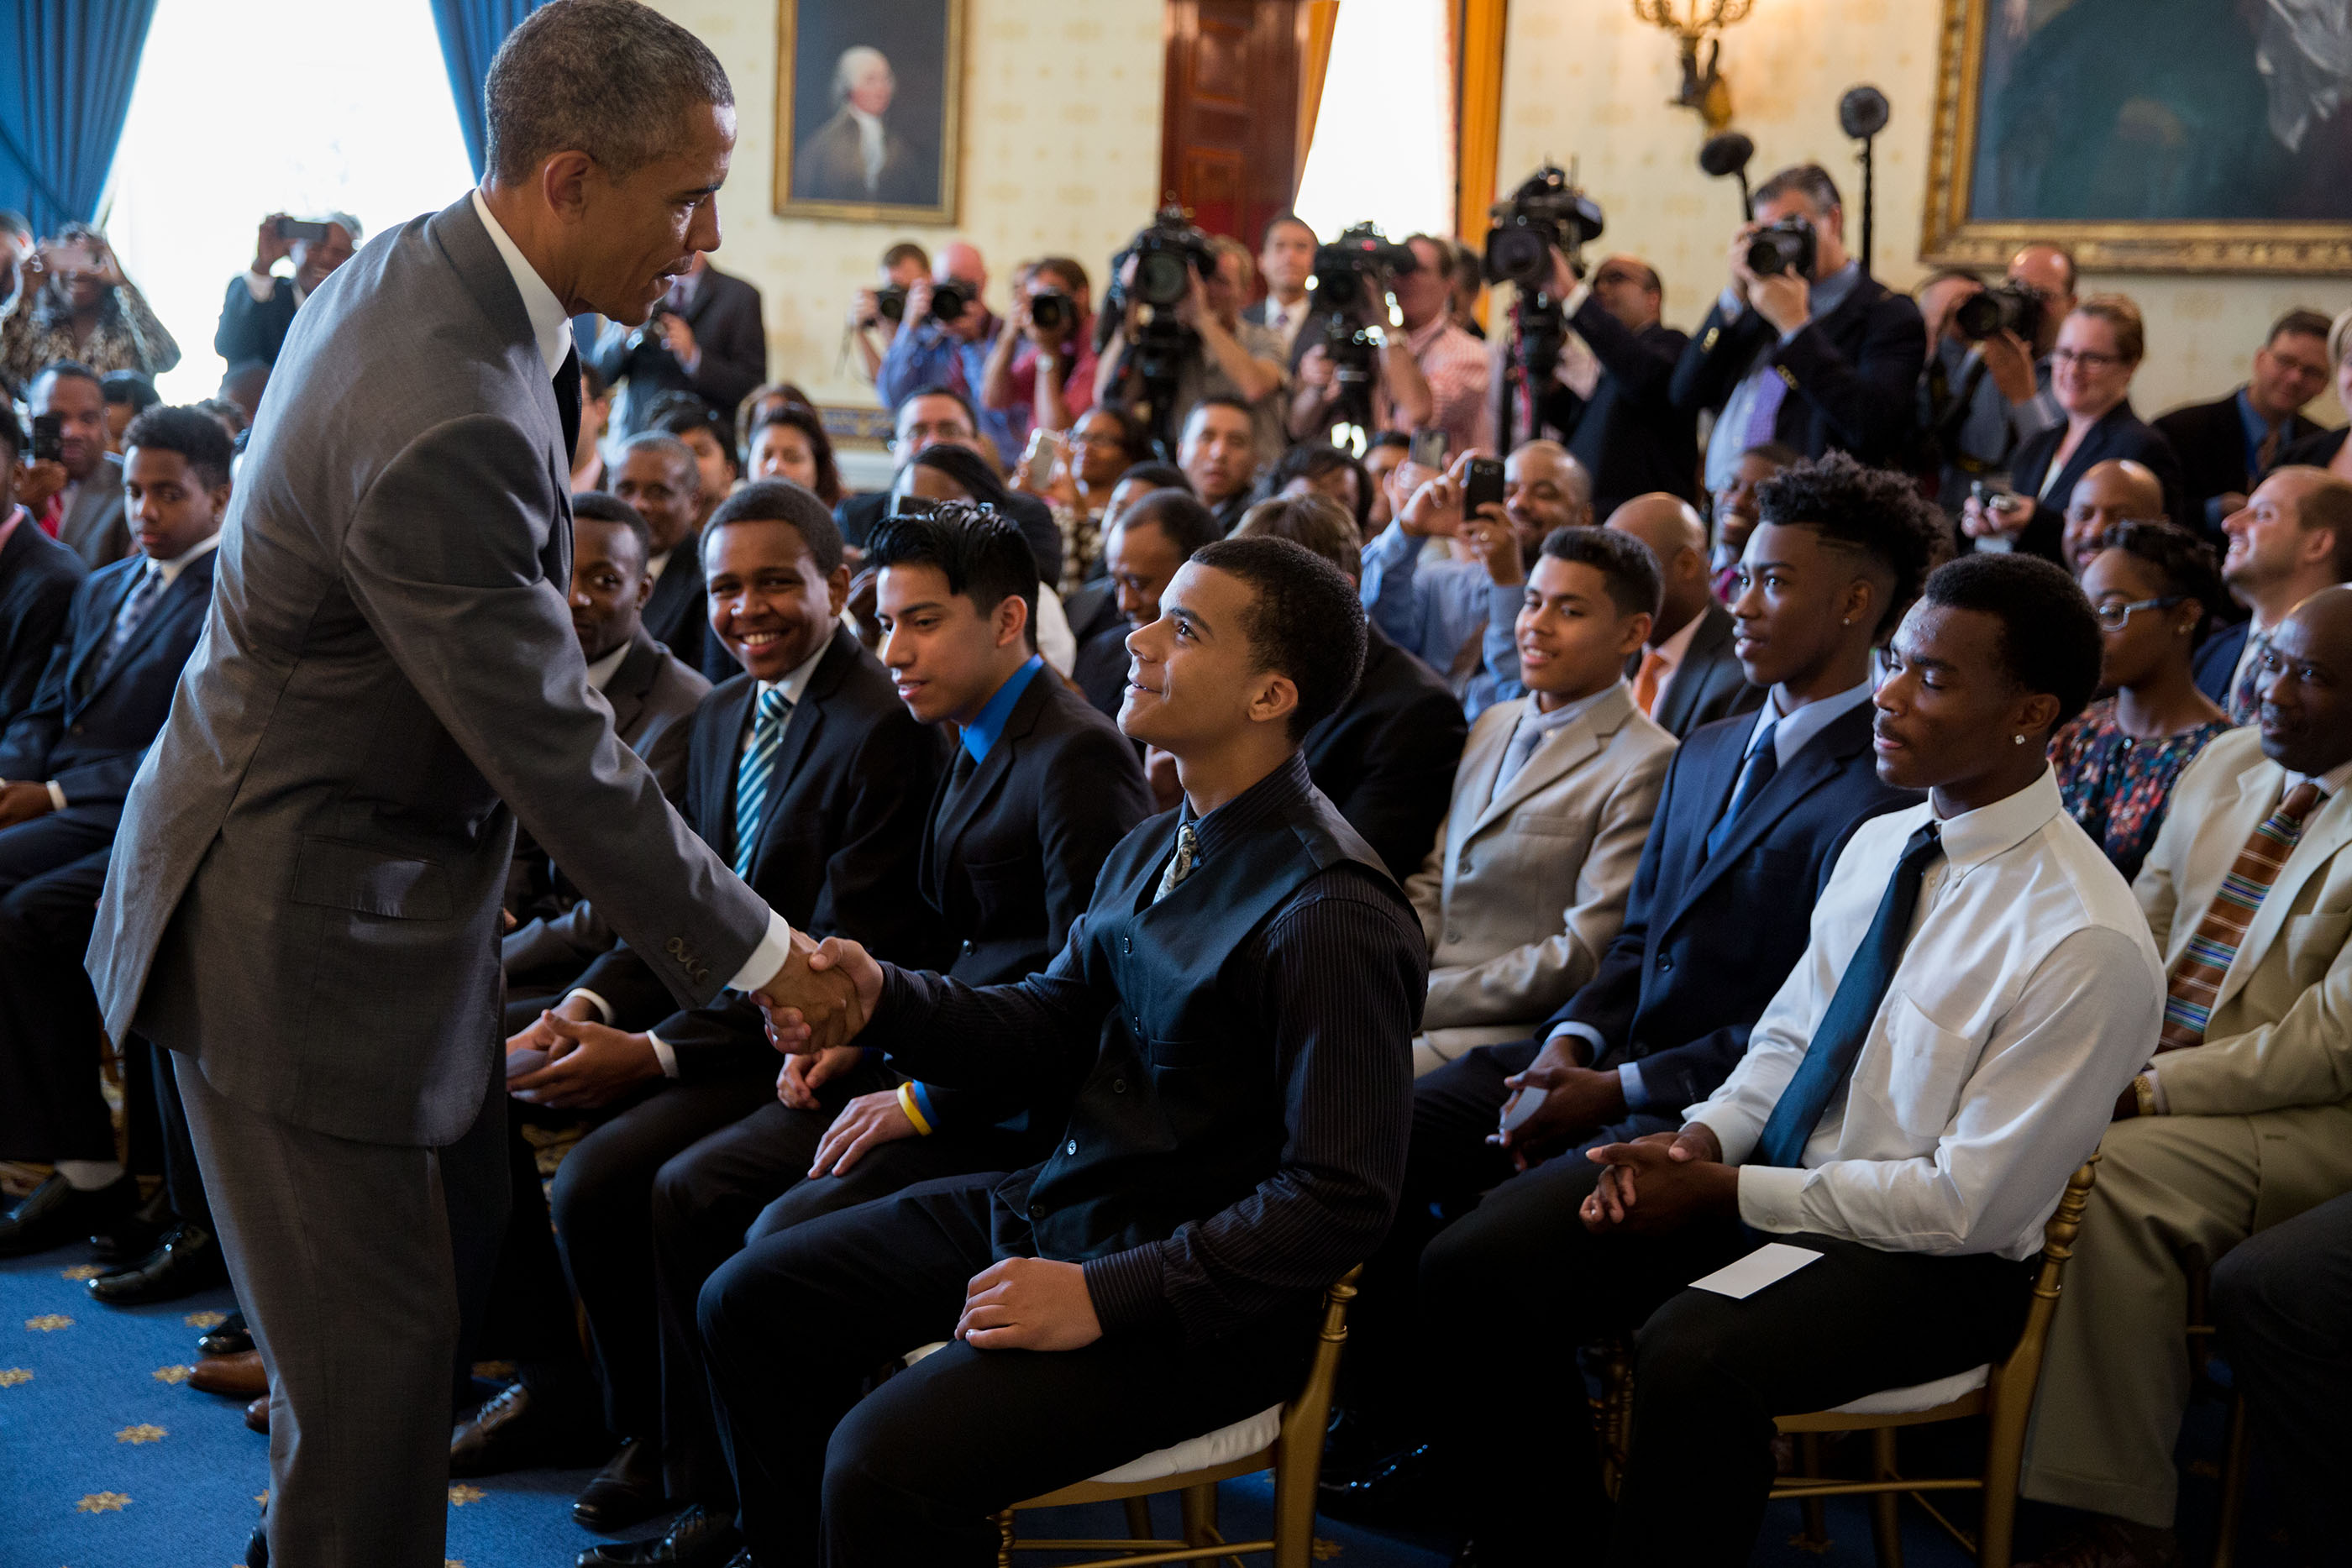 President Obama congratulates mentees following his remarks at the Mentorship and Leadership graduation ceremony